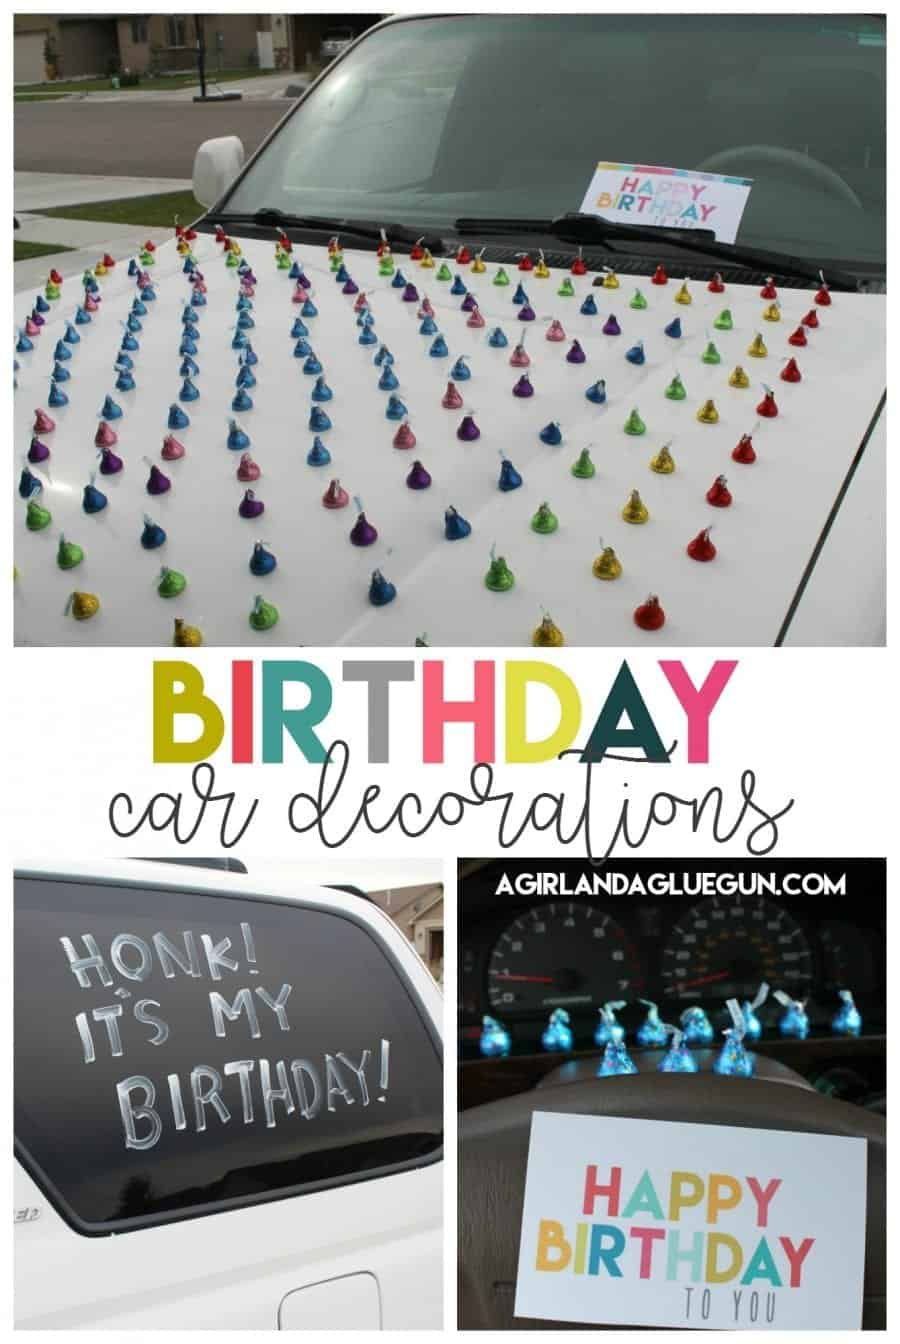 decorate-car-for-a-fun-birthday-surprise